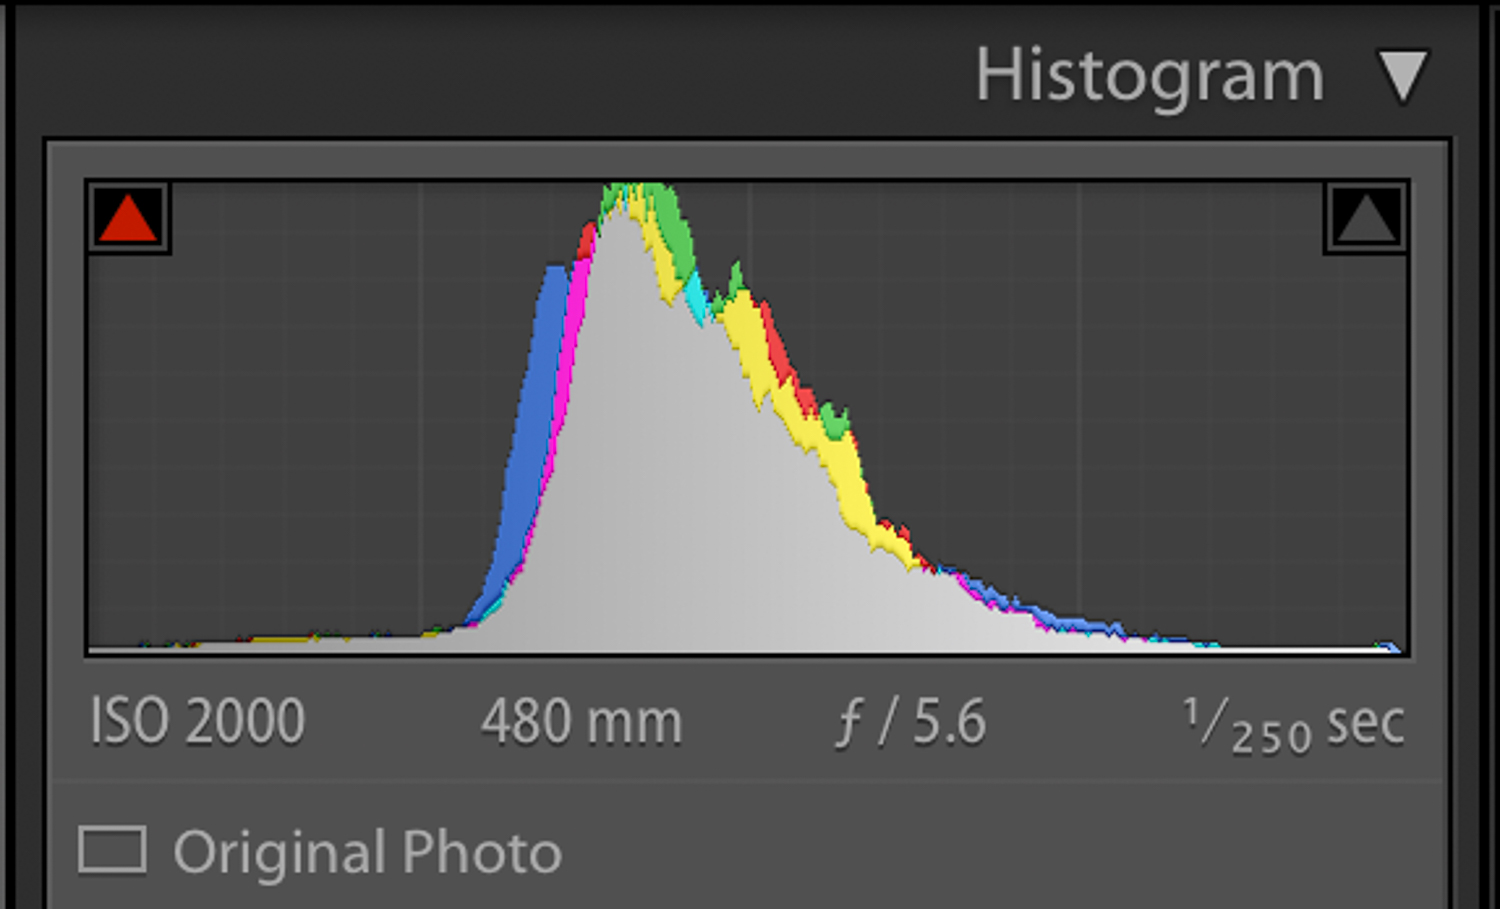 the histogram in Lightroom